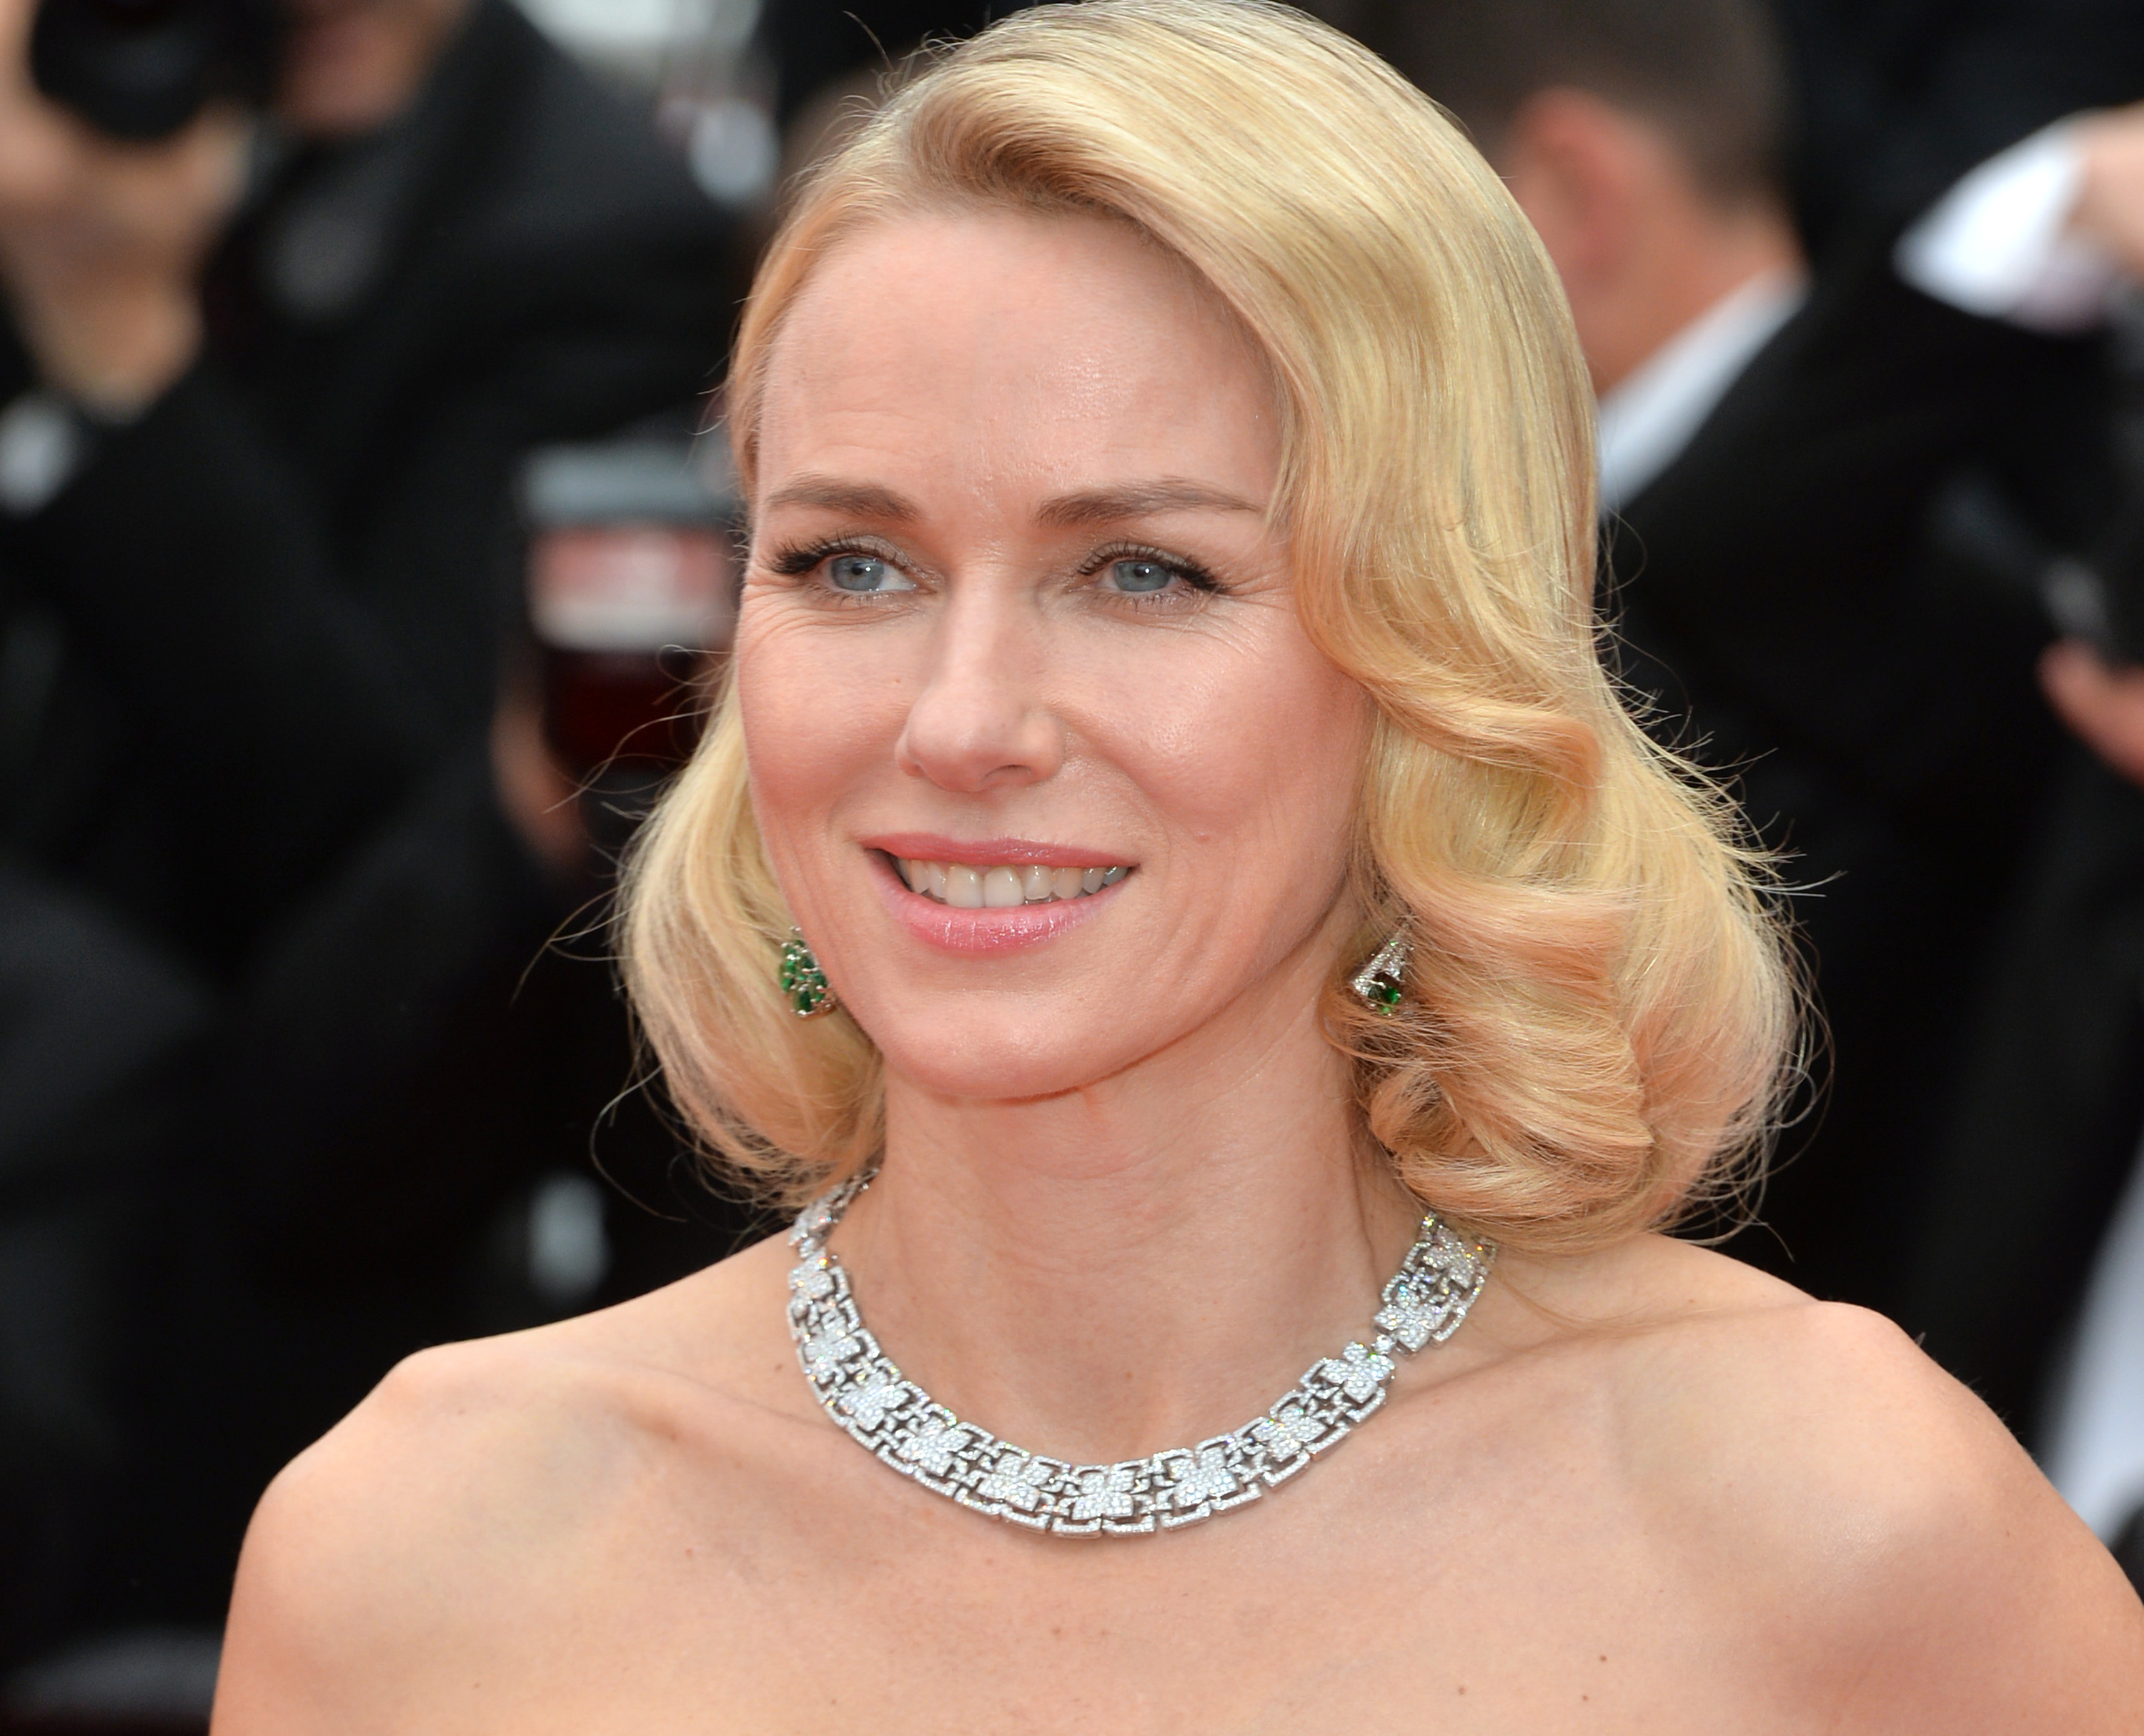 Naomi Watts hilariously gets her own back on fan sneaking a picture of her on the subway